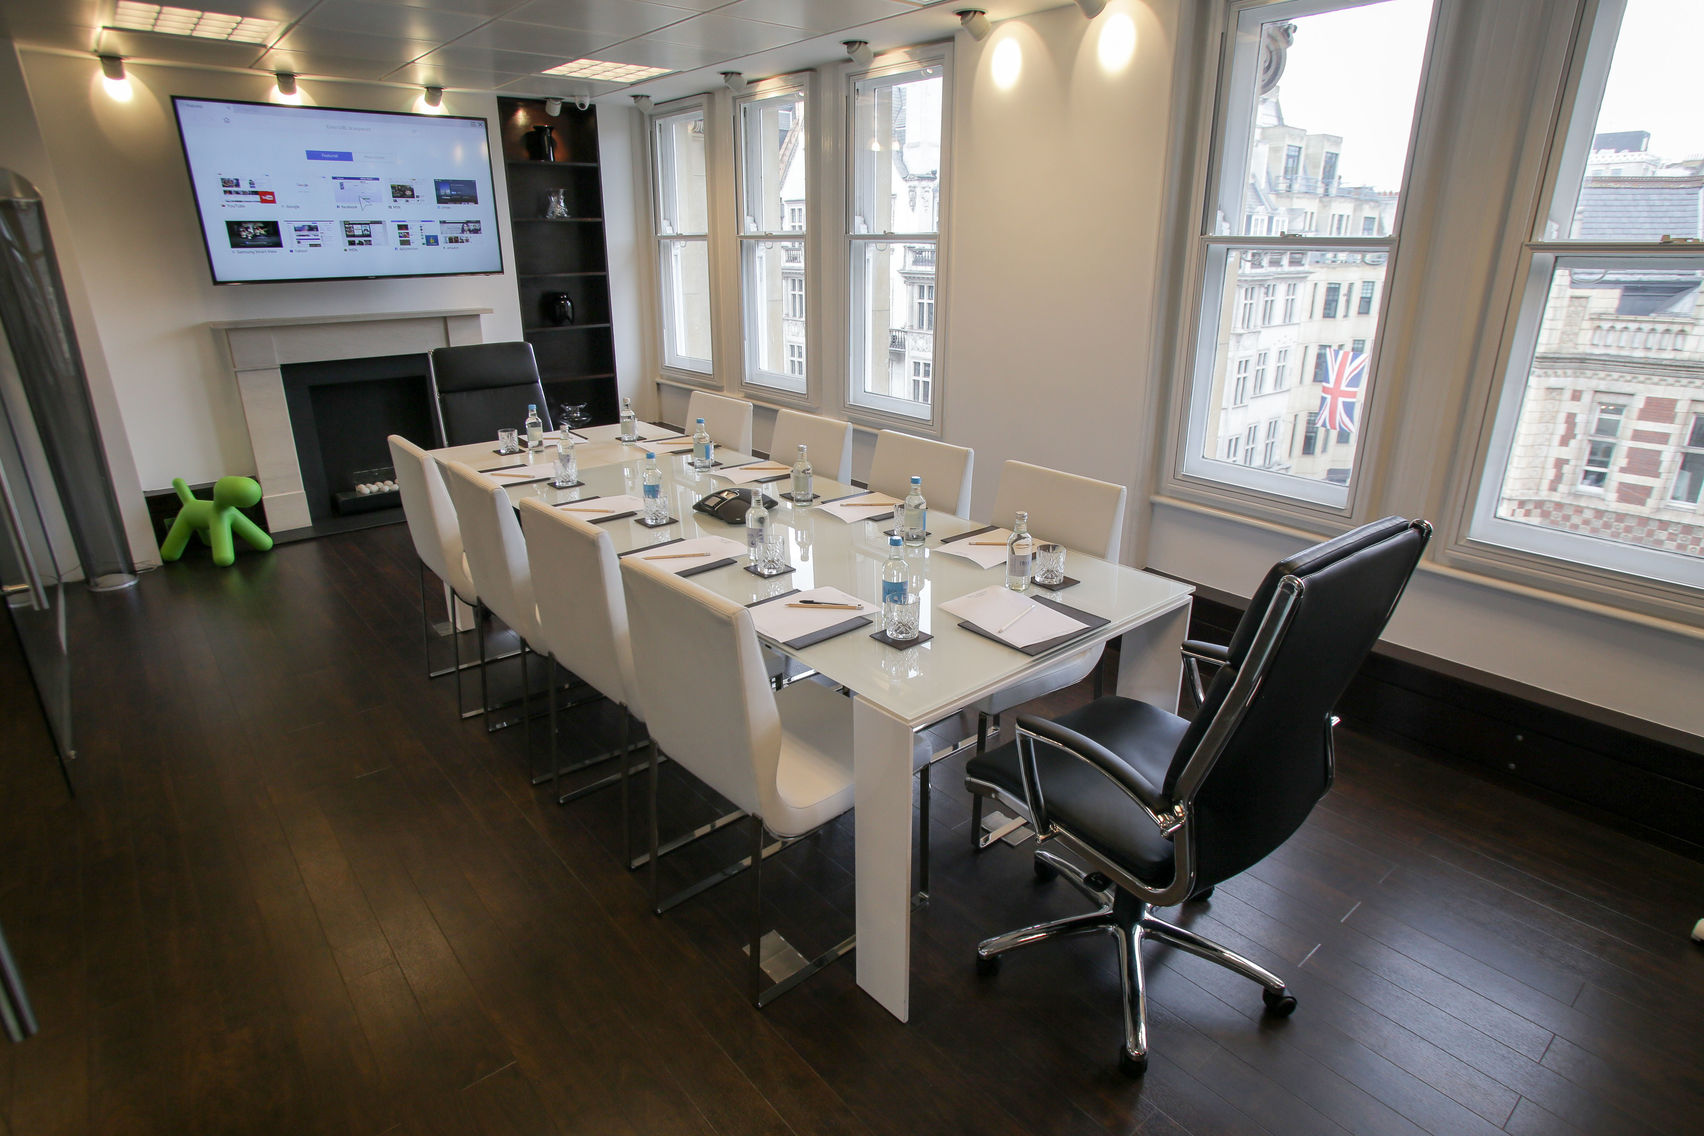 Mayfair, St James's and Piccadilly Meeting rooms, Piccadilly Chambers